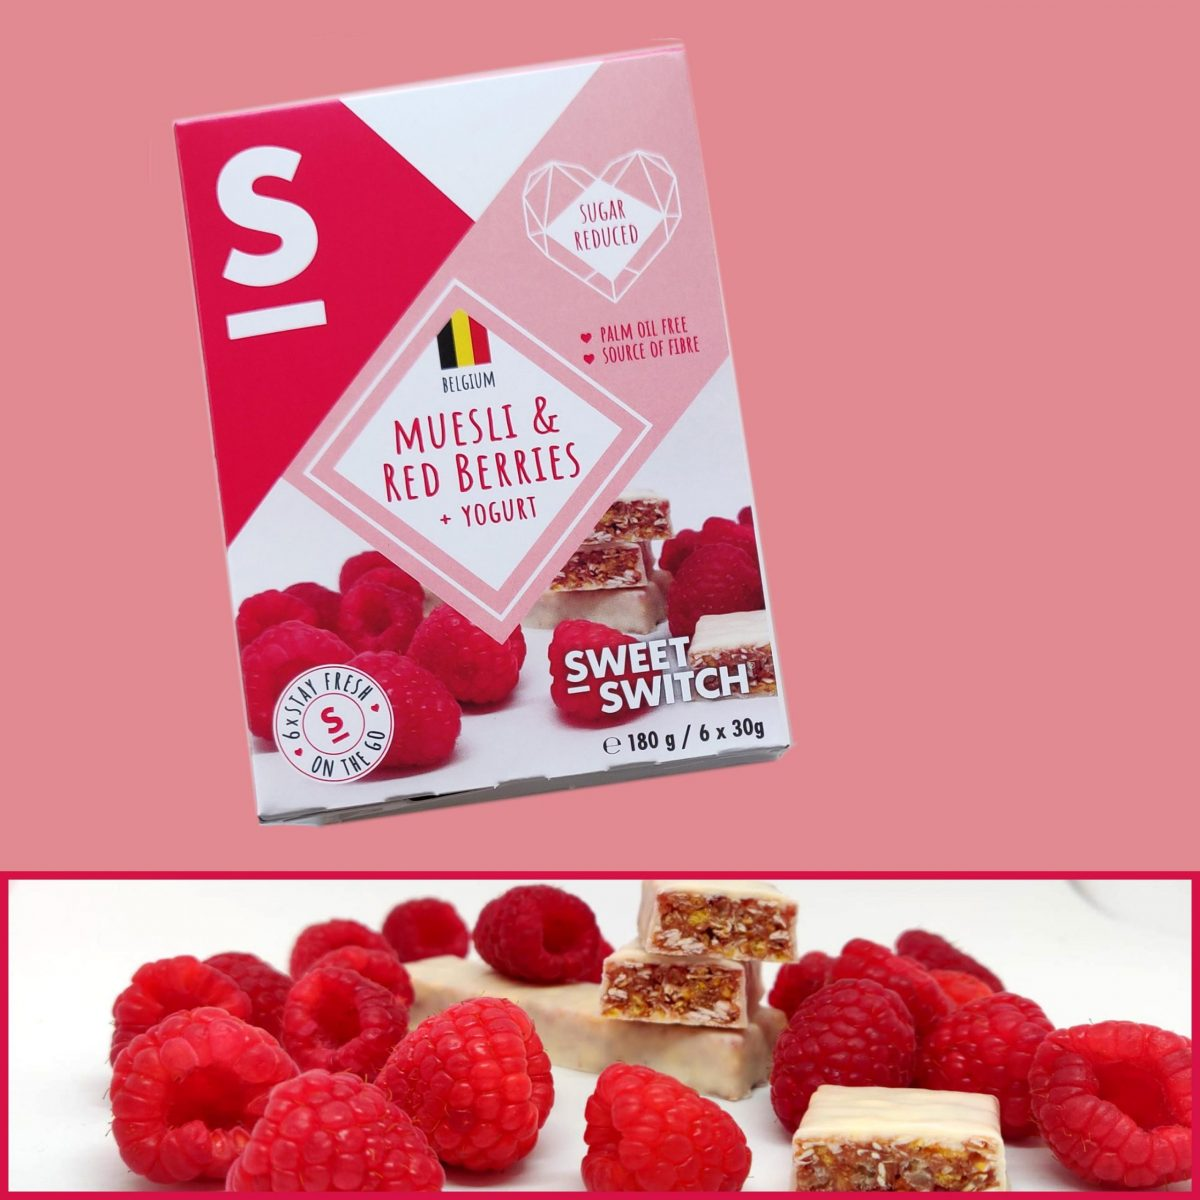 SWEET-SWITCH Muesli & red berries